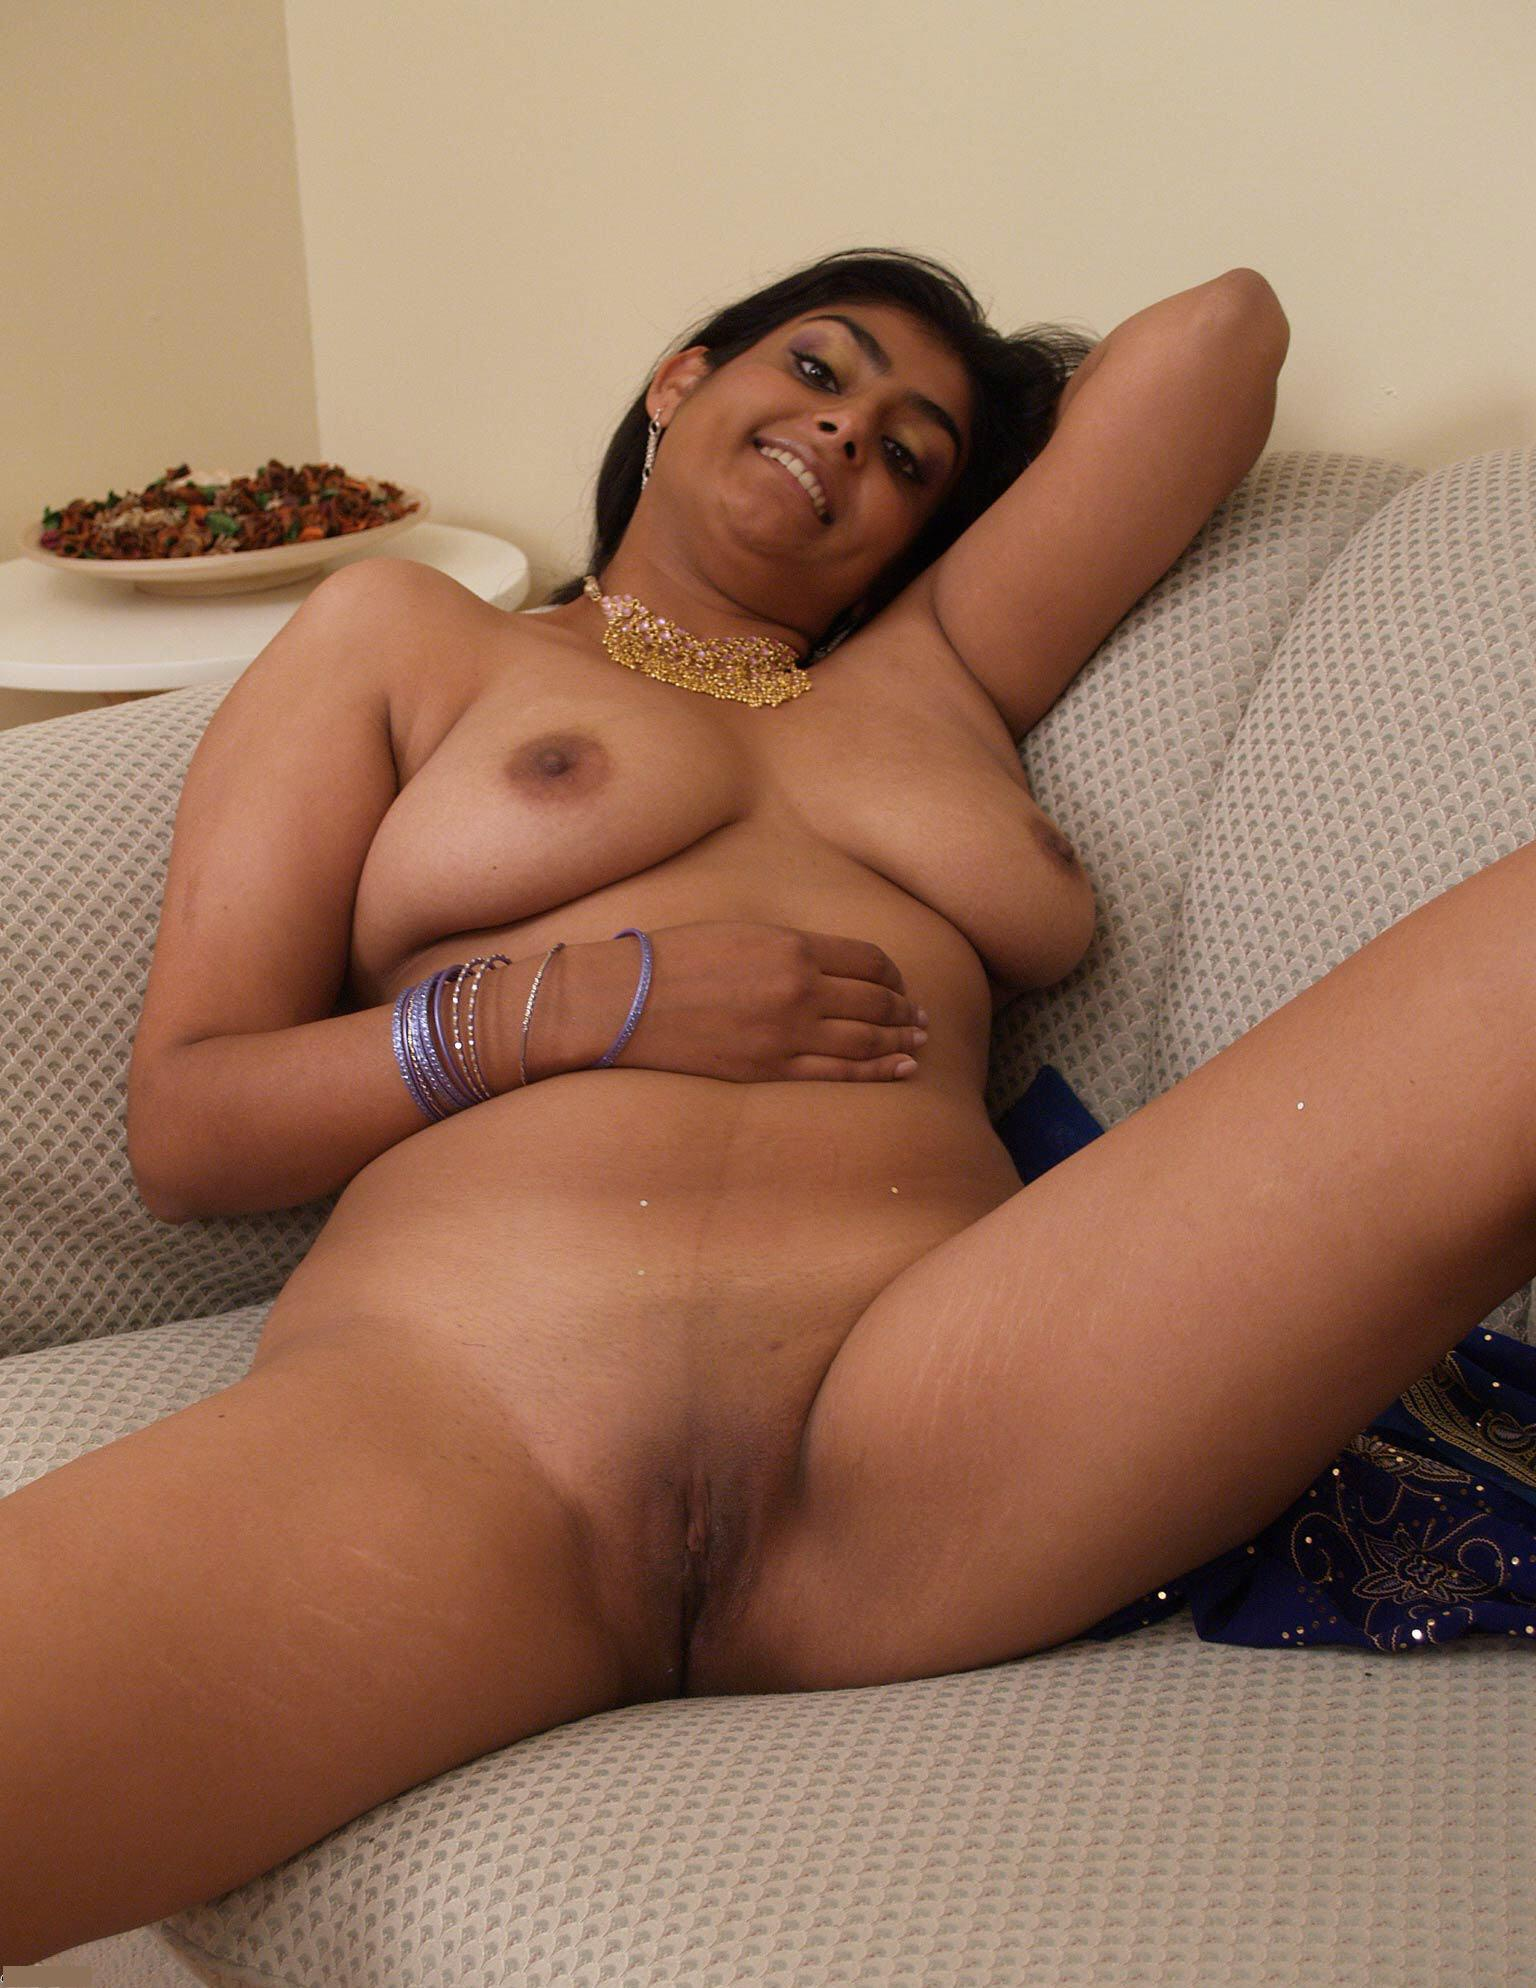 thought differently, hairy armpits busty paola remarkable, and